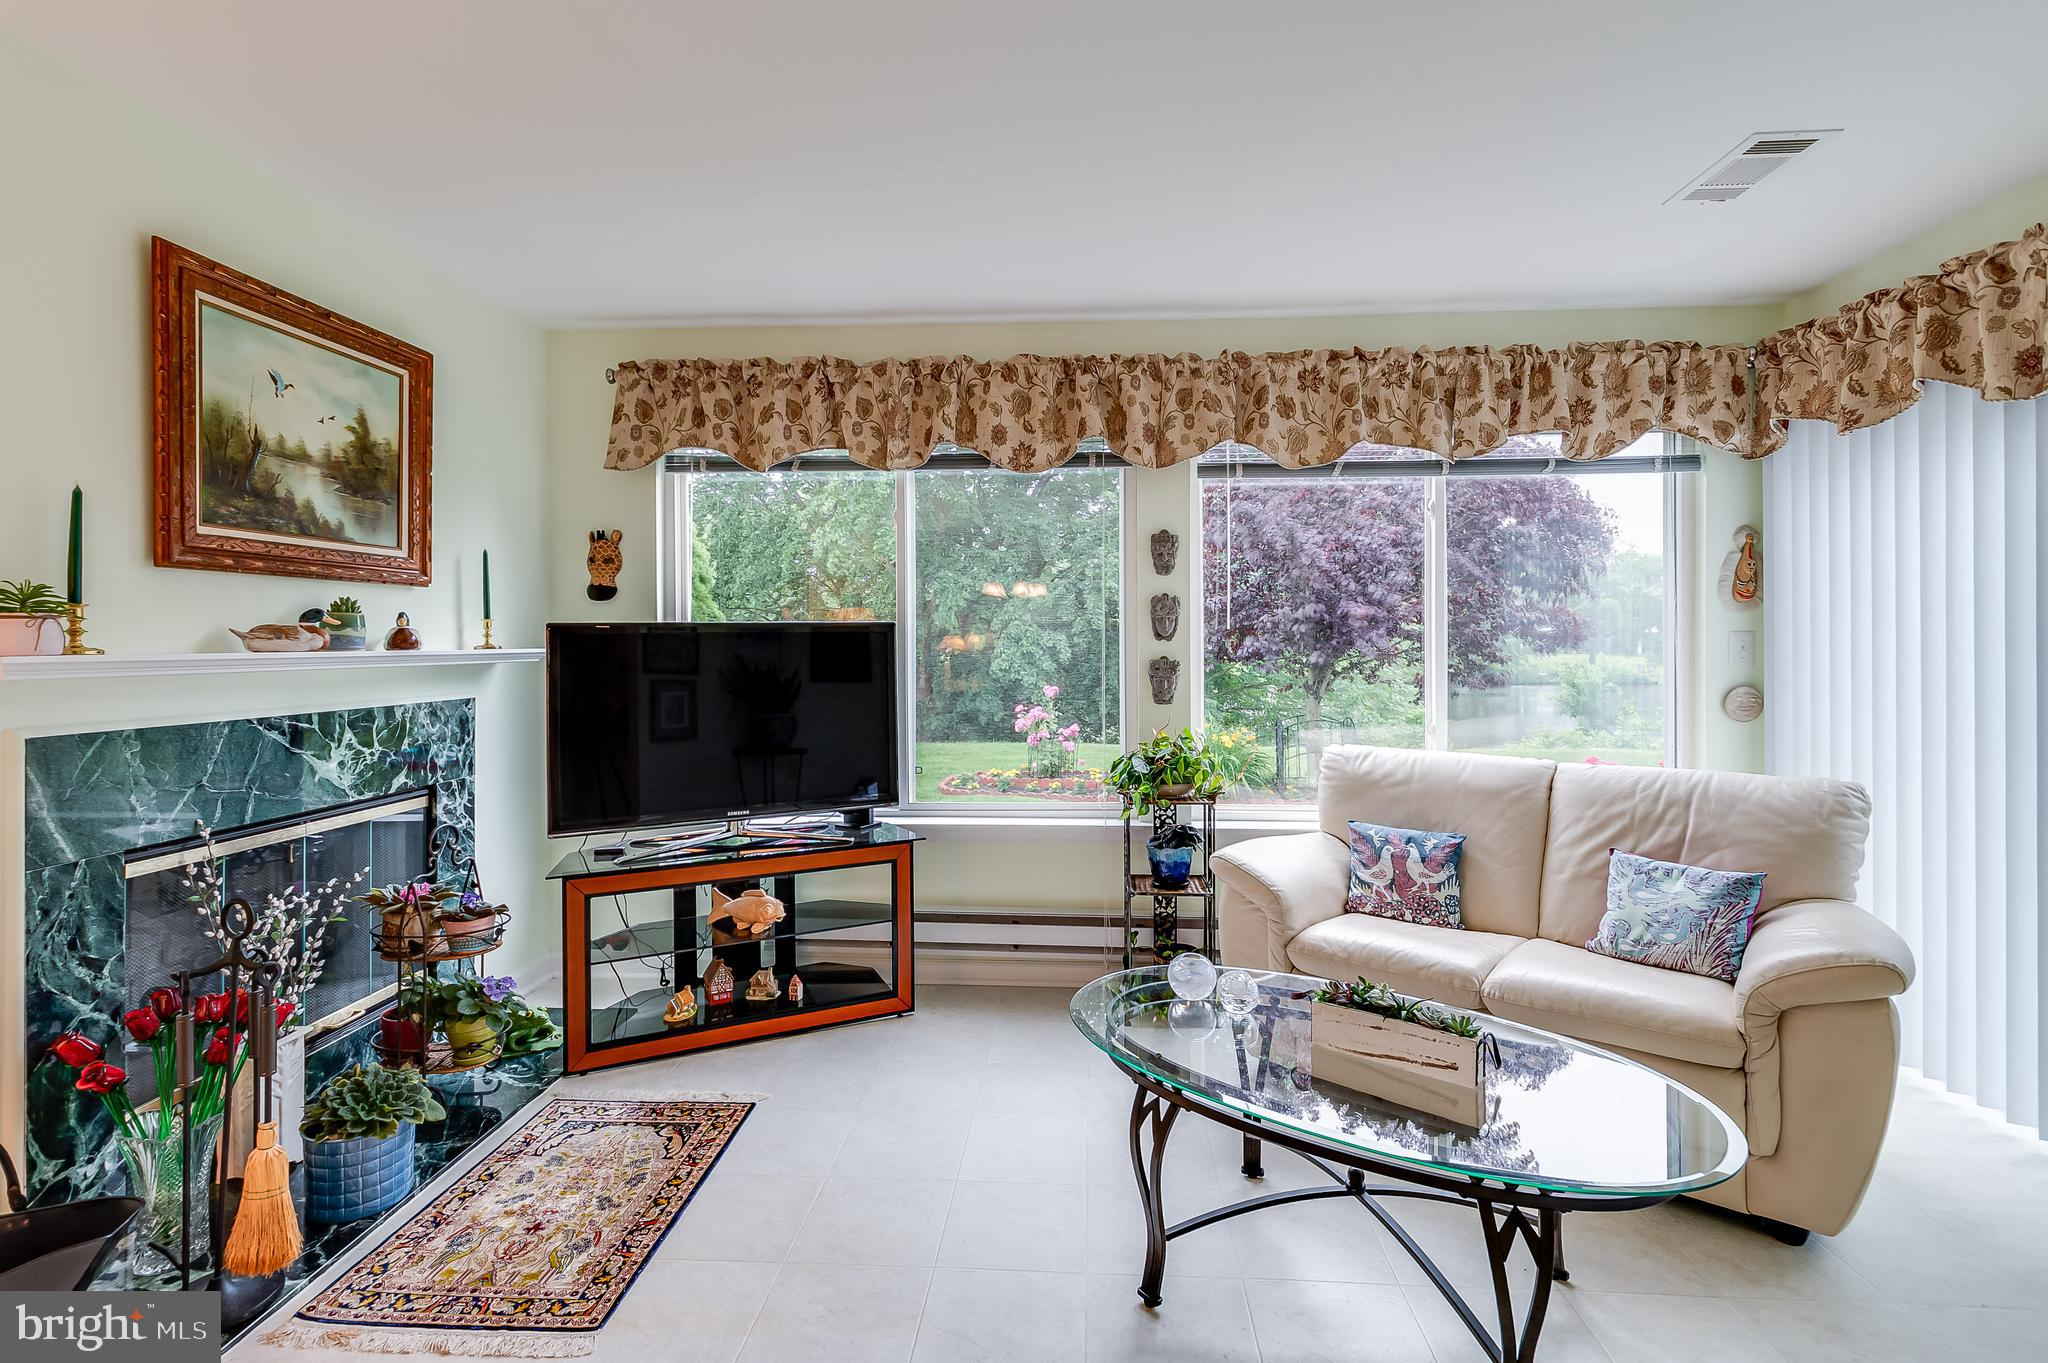 """How absolutely FABULOUS is this WATERFRONT,  EXPANDED Gladwyne model with 1270 Sq. Ft. of Worry- Free Living?? Where to Begin?? How about if we start with a walk up the Concrete Driveway to your Welcoming Porch and then through the beautiful, updated front entranceway. Once inside, your eyes will be immediately drawn to the gleaming Mahogany-toned Engineered Hardwood Flooring, which runs throughout the Living Room, Dining Room, Hall and both Bedrooms. The Living and Dining Rooms have an open floorplan which offers airiness and flow for entertaining. Speaking of Entertaining....as you move into these rooms, you will then be impressed with the 10 x 14 Sunroom with STUNNING, sweeping views of Canterbury lake, which can be seen from virtually every room of this home! Leading from the Dining Room, this Exquisite Room features a Wood Burning Marble-faced Fireplace with Glass Doors. Shelving above gives space for your decorative items. Sliding Windows offer Relaxing Views of both Garden and Lake.  There is an additional Pantry/Storage Closet for convenience. The Brightness of this room extends into the home.  Sliders lead to a Stamped Concrete Patio with an """"Aristocrat"""" Retractable Awning that will provide you and your guests endless hours of pleasure. The Beautifully maintained Gardens are a Delight!  Moving back inside, the nicely-sized Kitchen, which also has a window view into the Sun Room and lake views, offers updated Wooden Cabinets, Updated Appliances, Recessed Lighting and a modified Half-wall/Counter for both a quick bite and that coveted Counterspace!! The Fresh Blue Countertop makes this Kitchen just POP! Moving down the wide Hallway, you will pass a Laundry Center with 2020 Washer & Dryer. The Main Bath has been updated and is Bright and Airy, as is both the Primary Bathroom with not one, but TWO closets. This is no commonly found in a Gladwyne model. The Updated Primary Half-Bath is Clean and Refreshing. The Second Bedroom with amazing light, can be utilized """